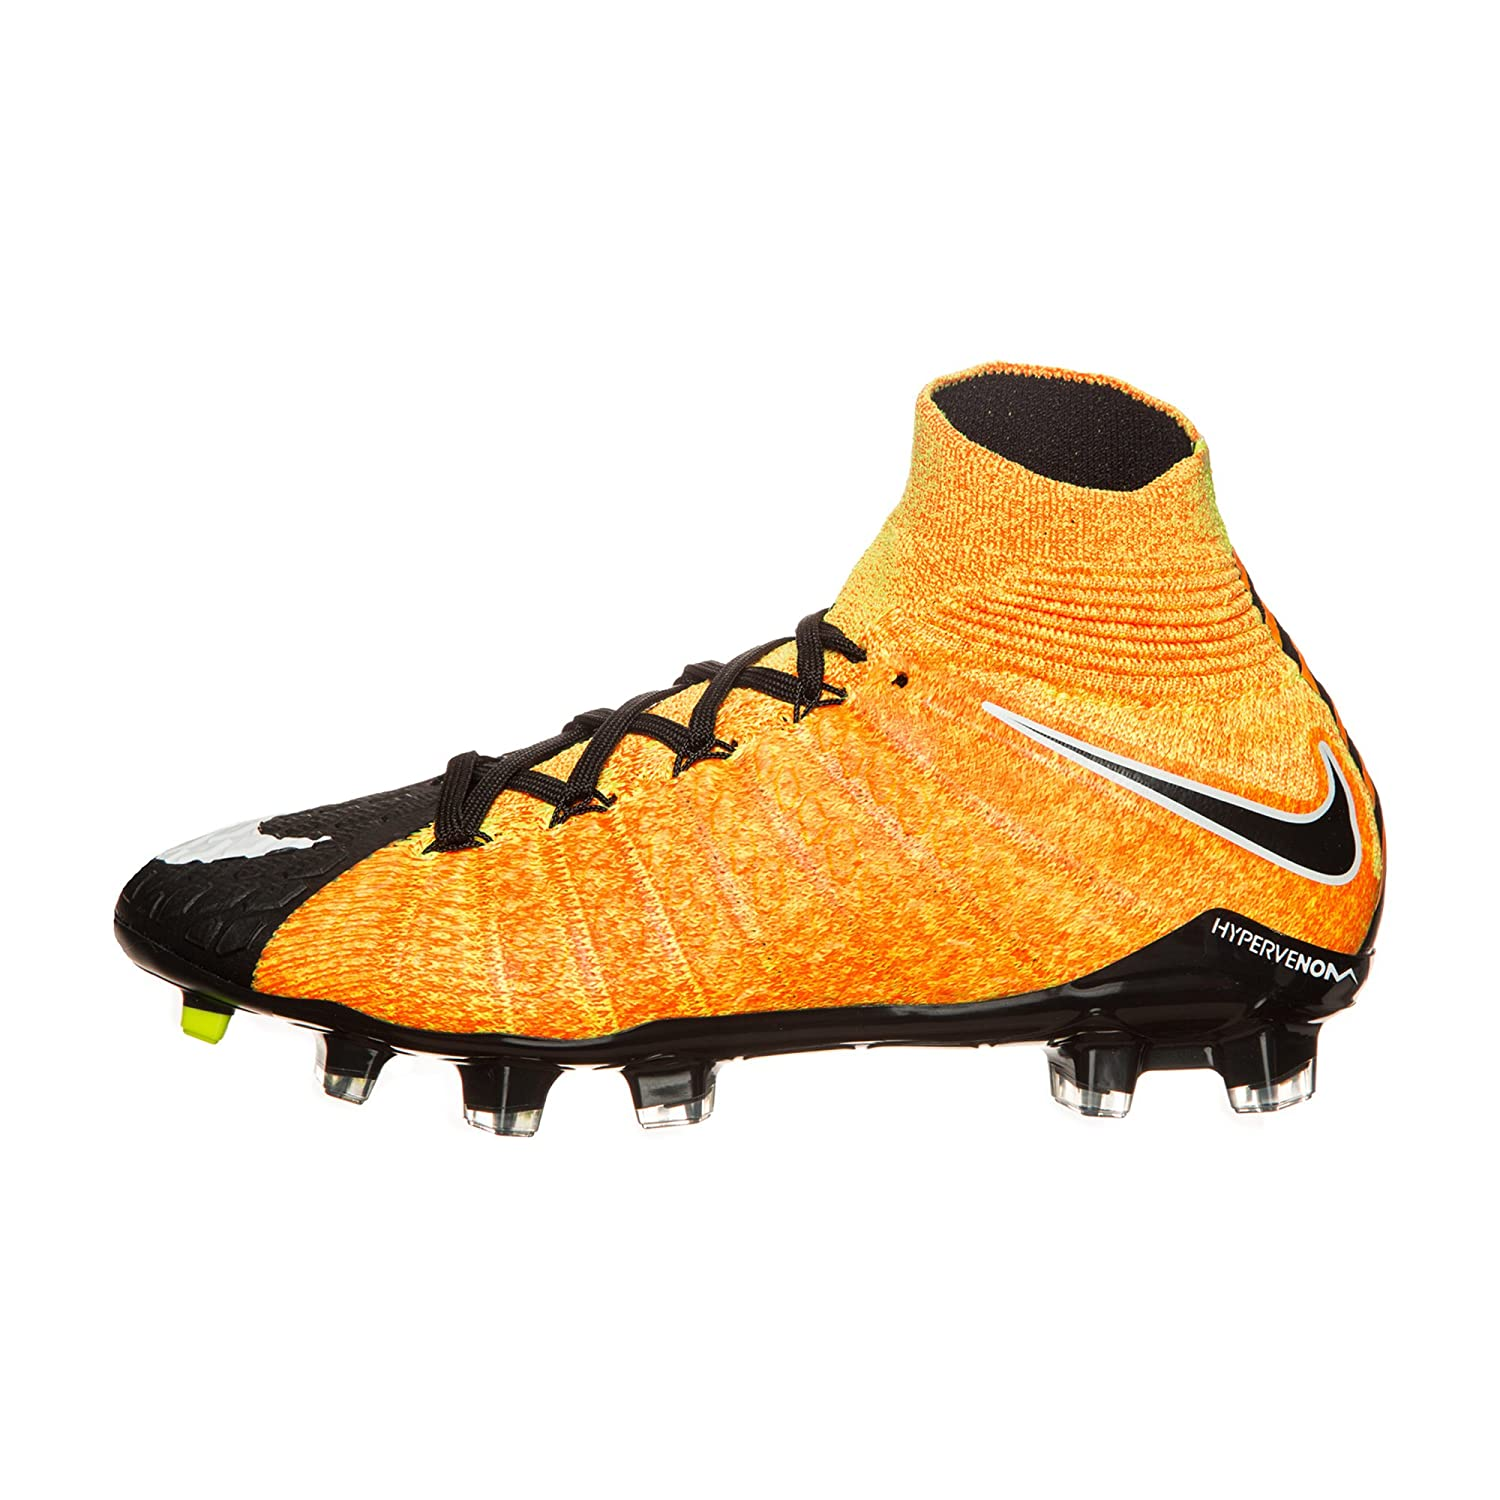 great deals 2017 buy sale look good shoes sale Nike Kids' Jr. Hypervenom Phantom 3 DF FG Soccer Shoe (Sz. 5.5Y) Laser  Orange, Black